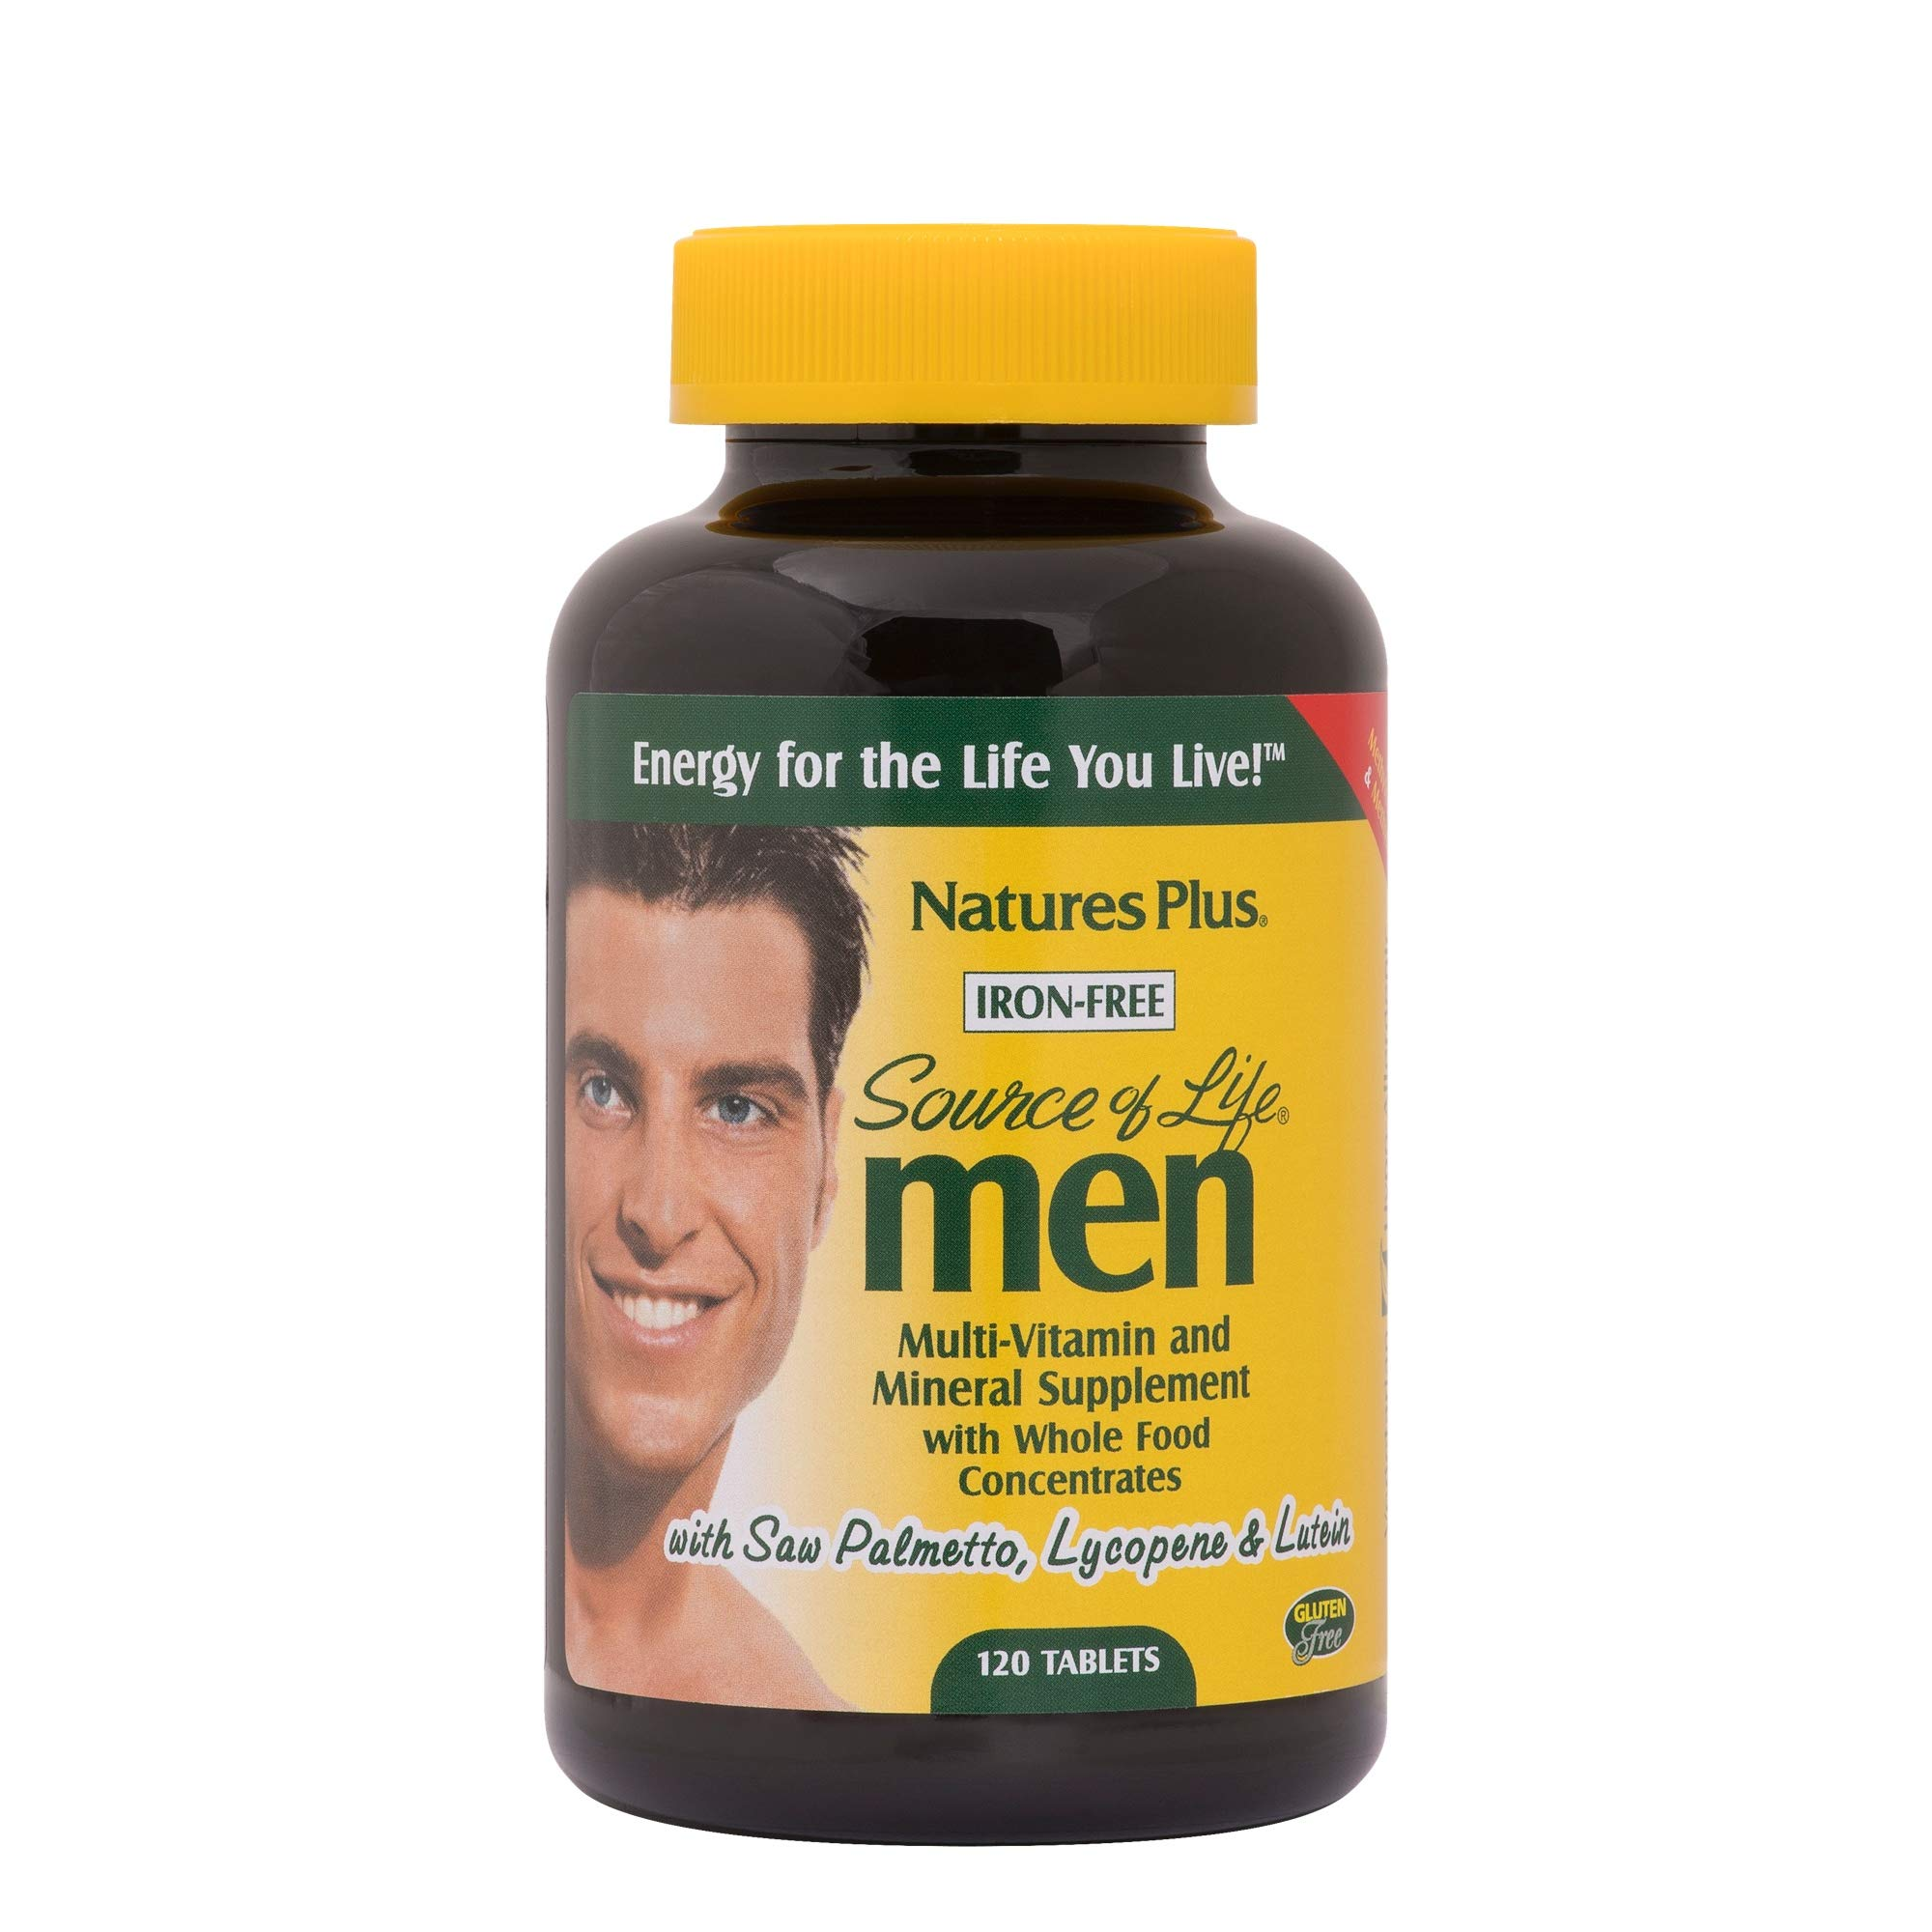 Natures Plus Source of Life Men - 120 Vegetarian Tablets - Natural Multivitamin for Men, Whole Foods, Minerals for Overall Health, Energy - Gluten Free - 60 Servings